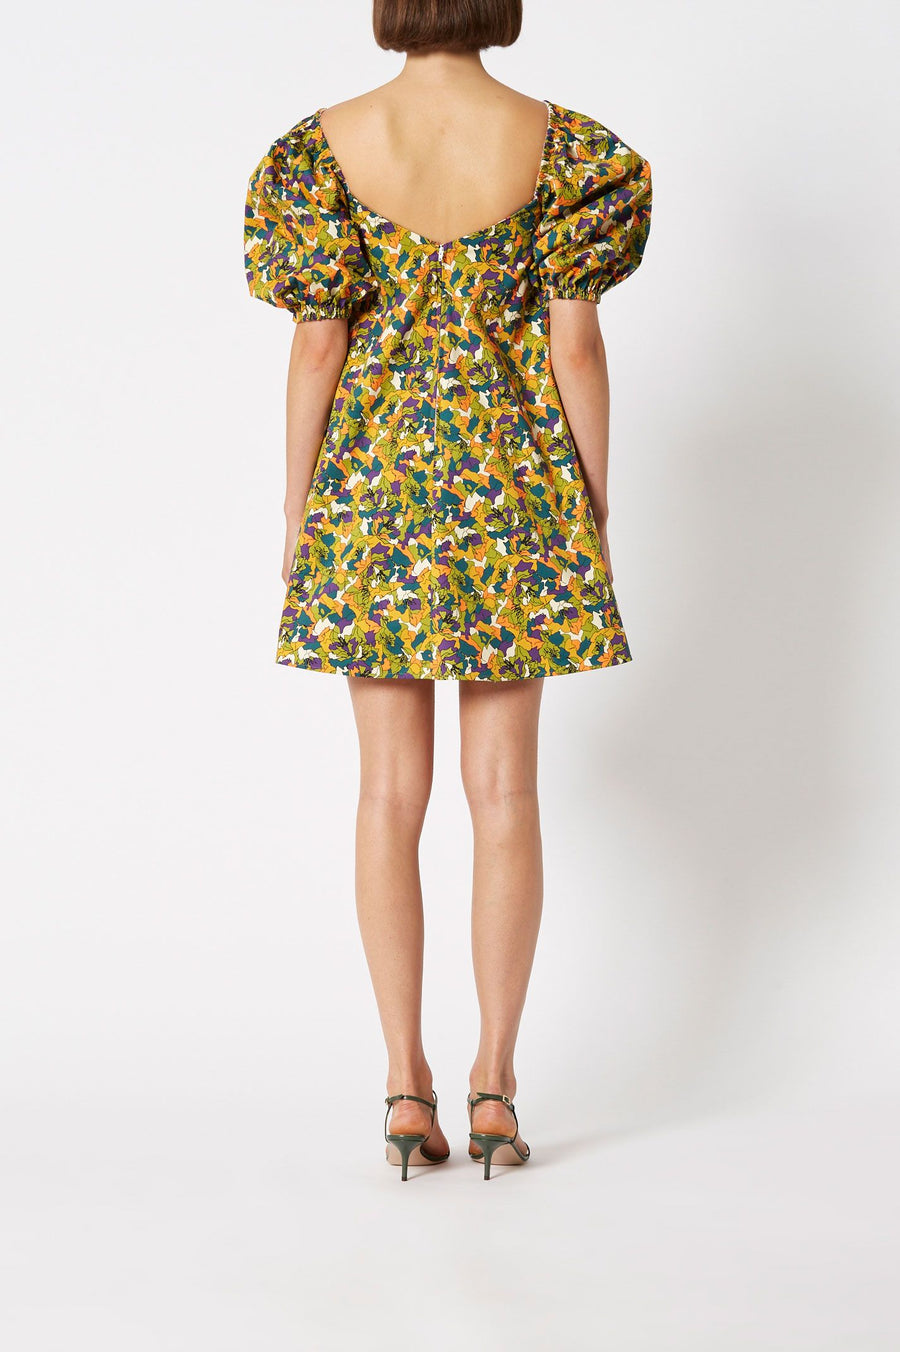 Printed Trapeze Dress Apricot, mini Length, mid sleeves with elasticated cuff, elasticated neckline